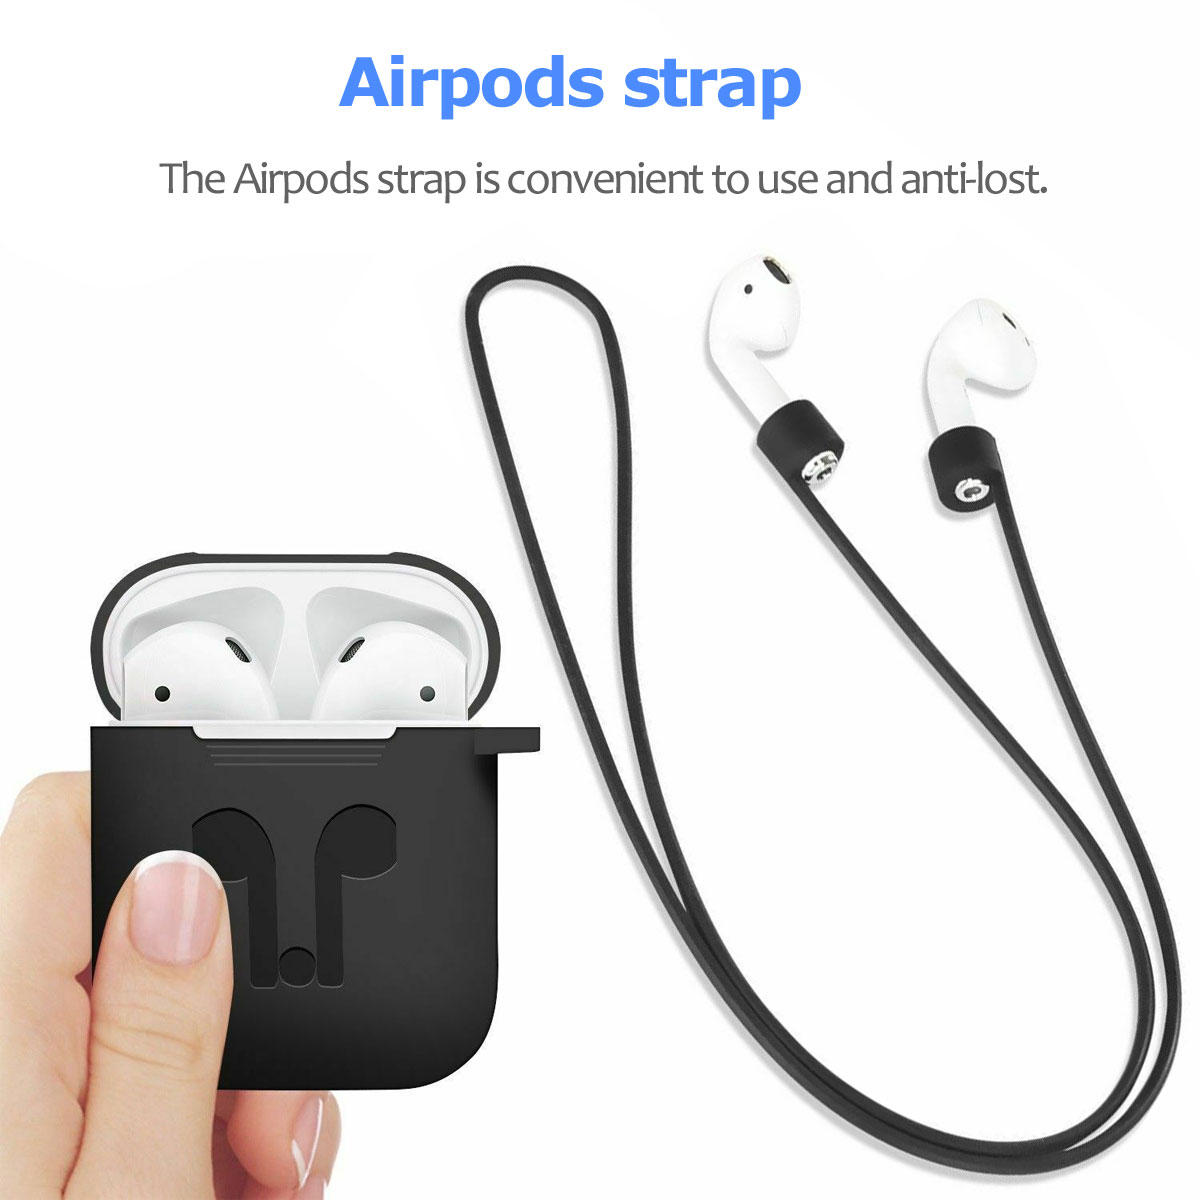 Silicone-Ruggged-Case-Cover-Earbuds-For-Apple-AirPods-2nd-Gen-Accessories-2019 thumbnail 16